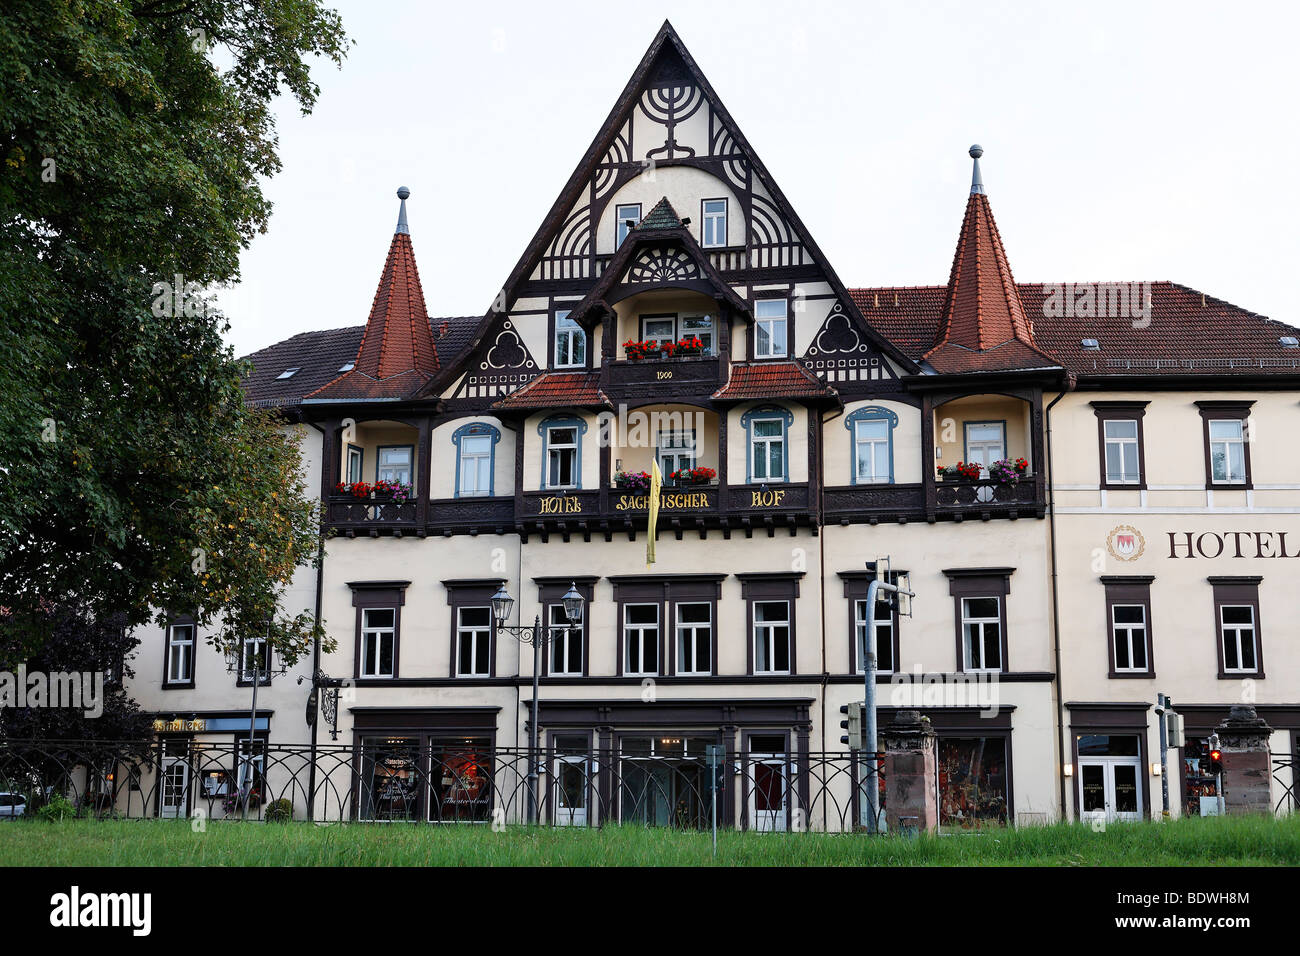 Saechsischer Hof, historic hotel, half-timbered house, Meiningen, Rhoen, Thuringia, Germany, Europe - Stock Image